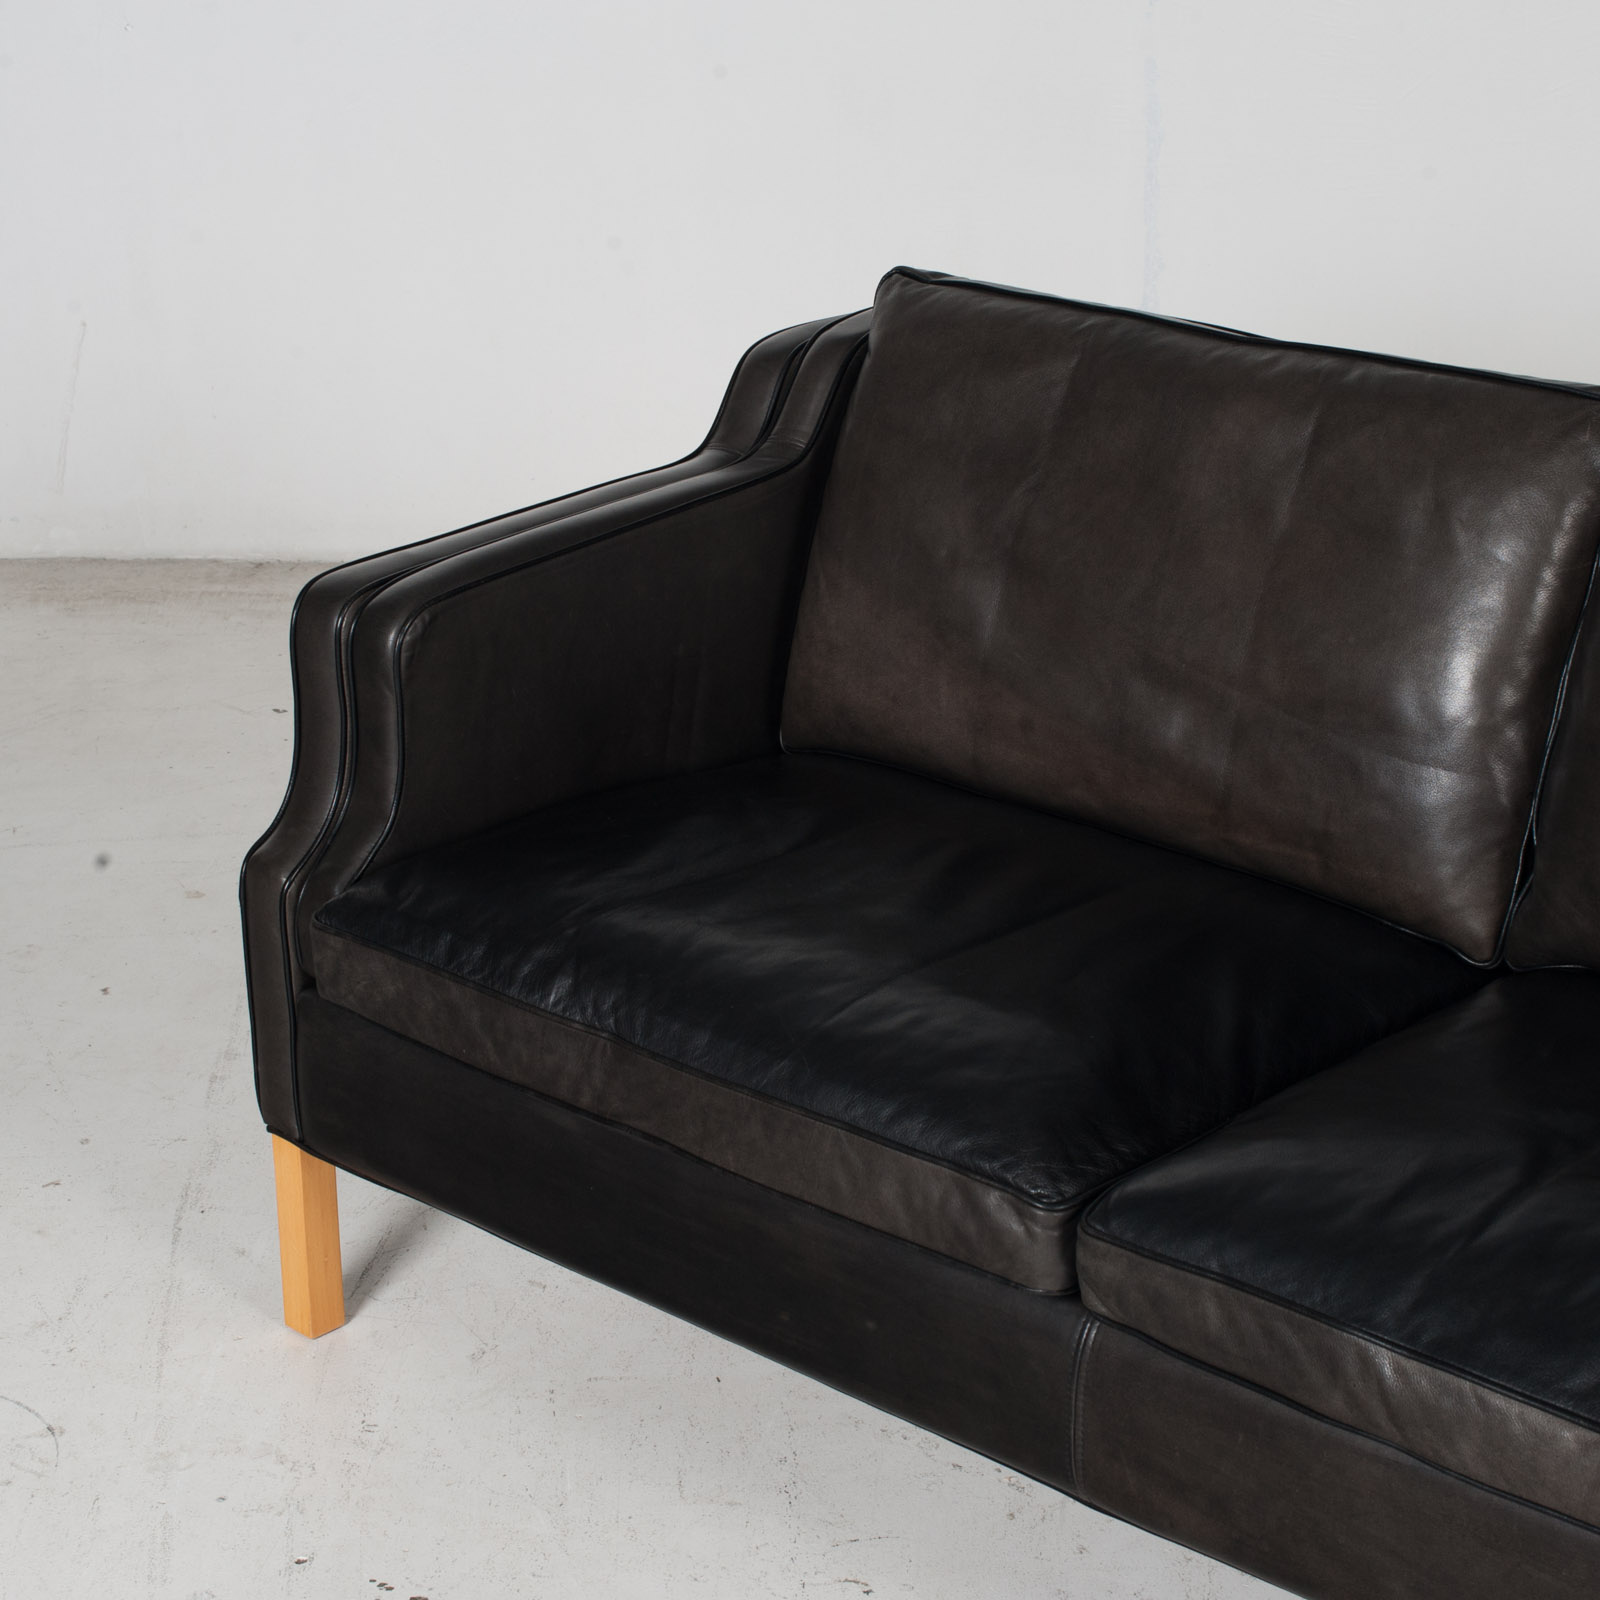 2 Seat Sofa By Stouby In Black Leather With Beech Legs, 1960s, Denmark 6